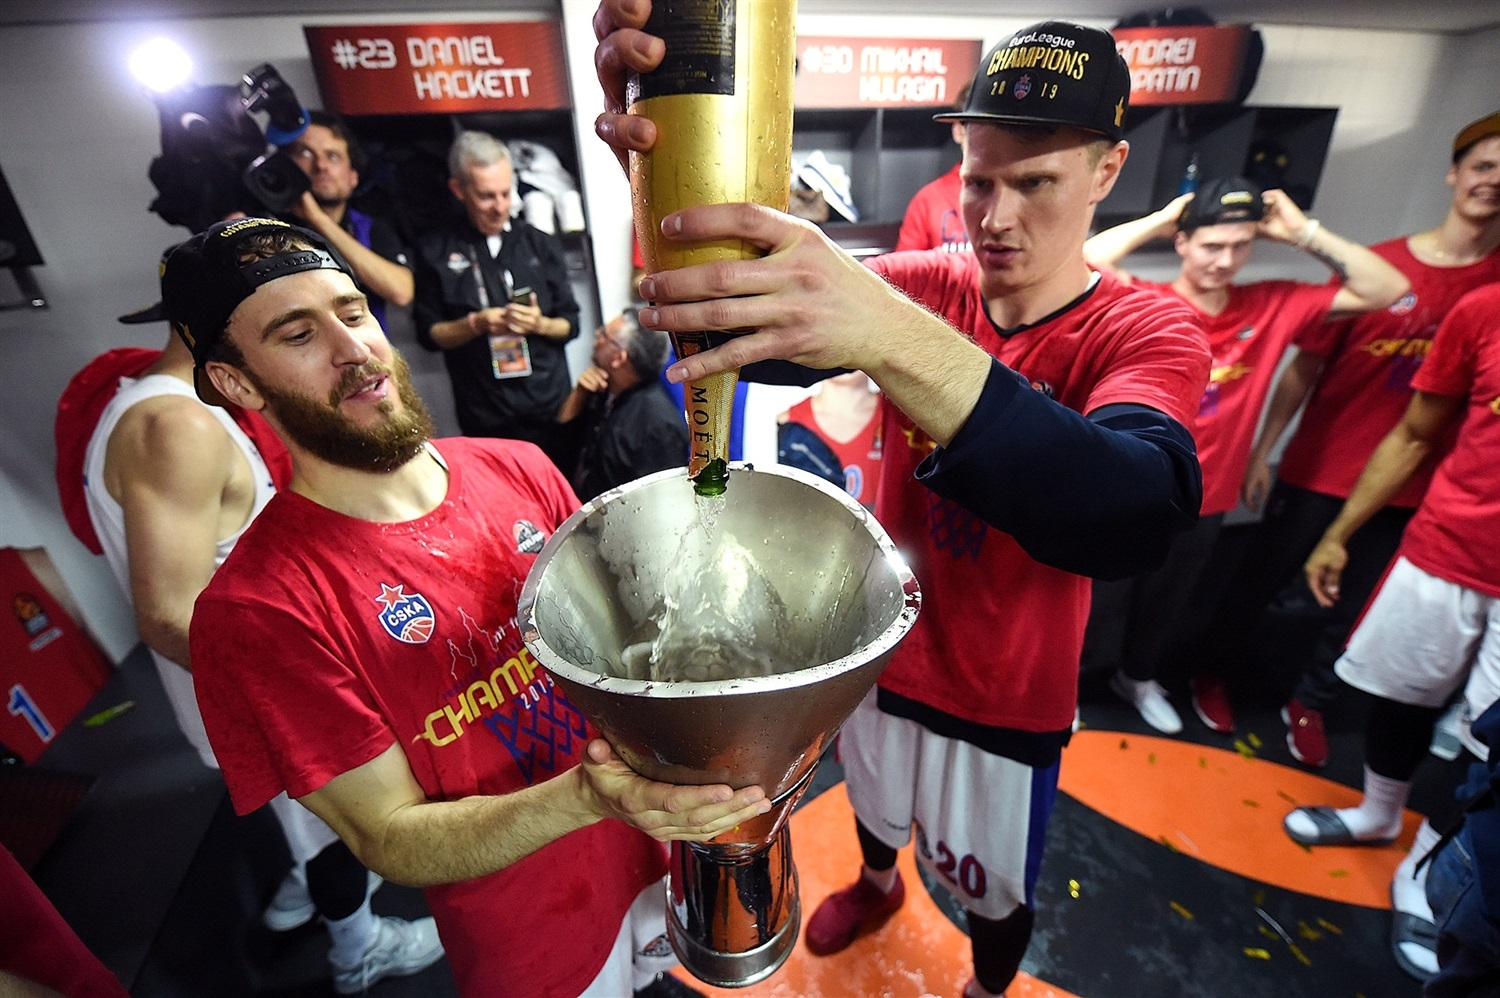 Andrey Vorontsevich celebrates in the locker room - CSKA Moscow Champ - Final Four Vitoria-Gasteiz 2019 - EB18